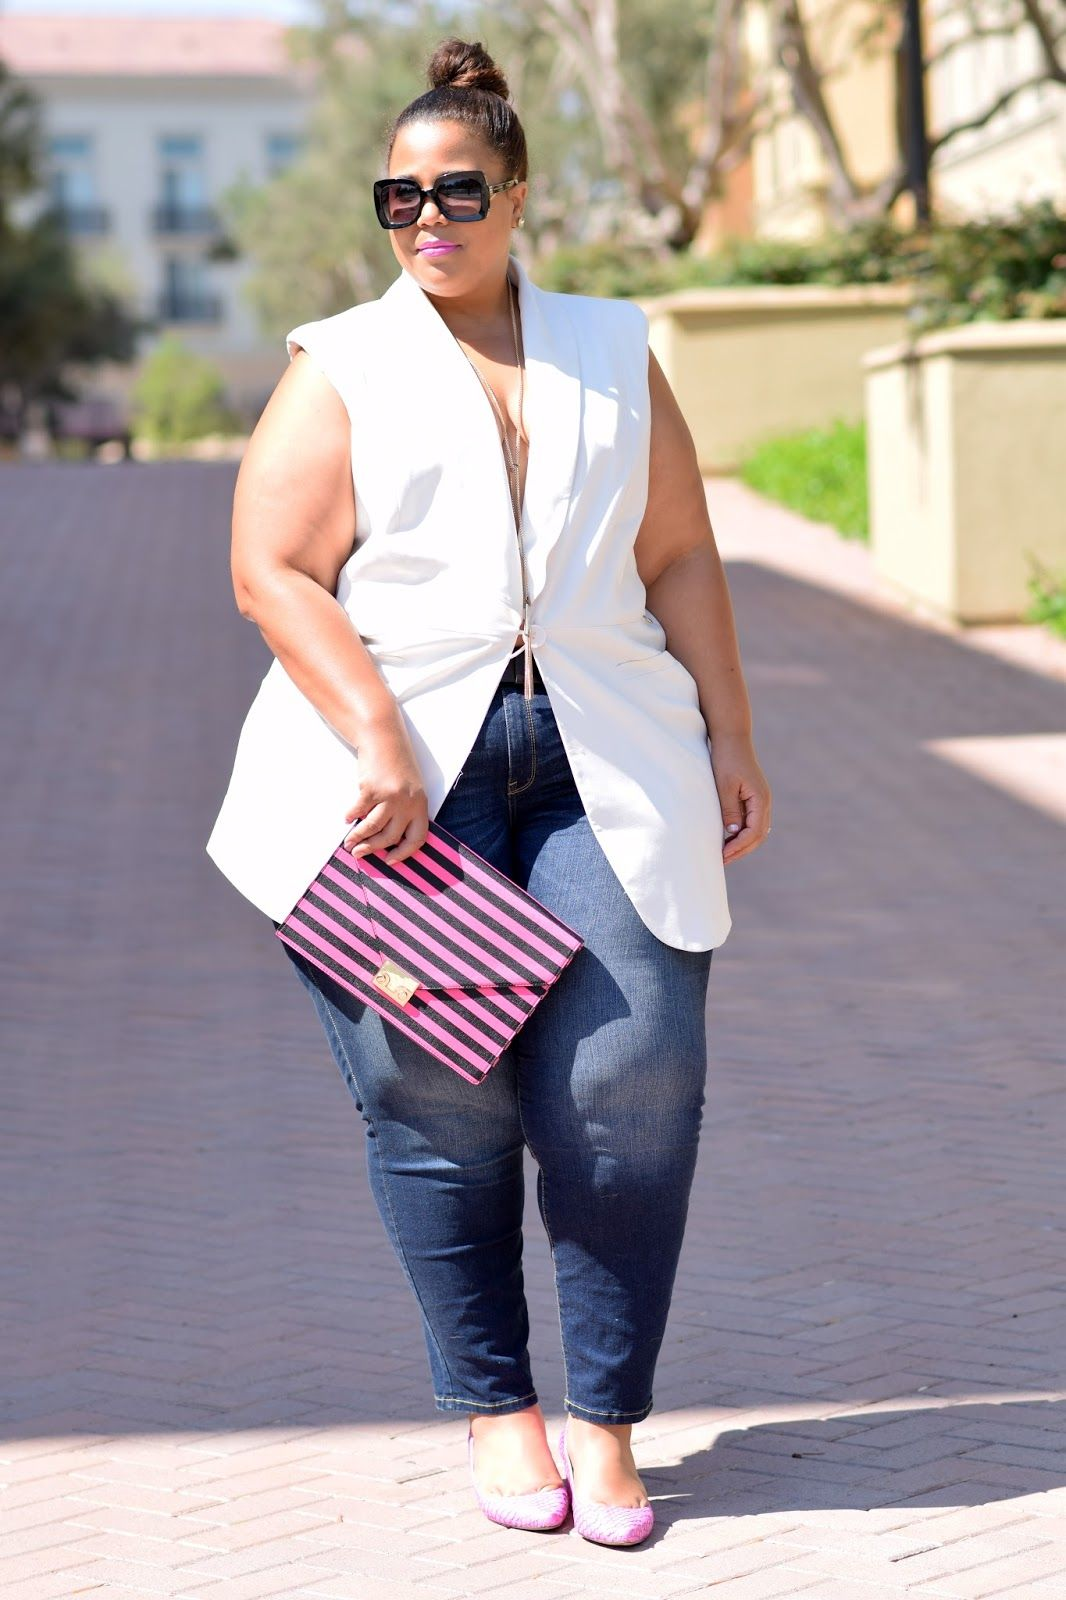 GarnerStyle | The Curvy Girl Guide: Nuetral | My Plus Size Style ...